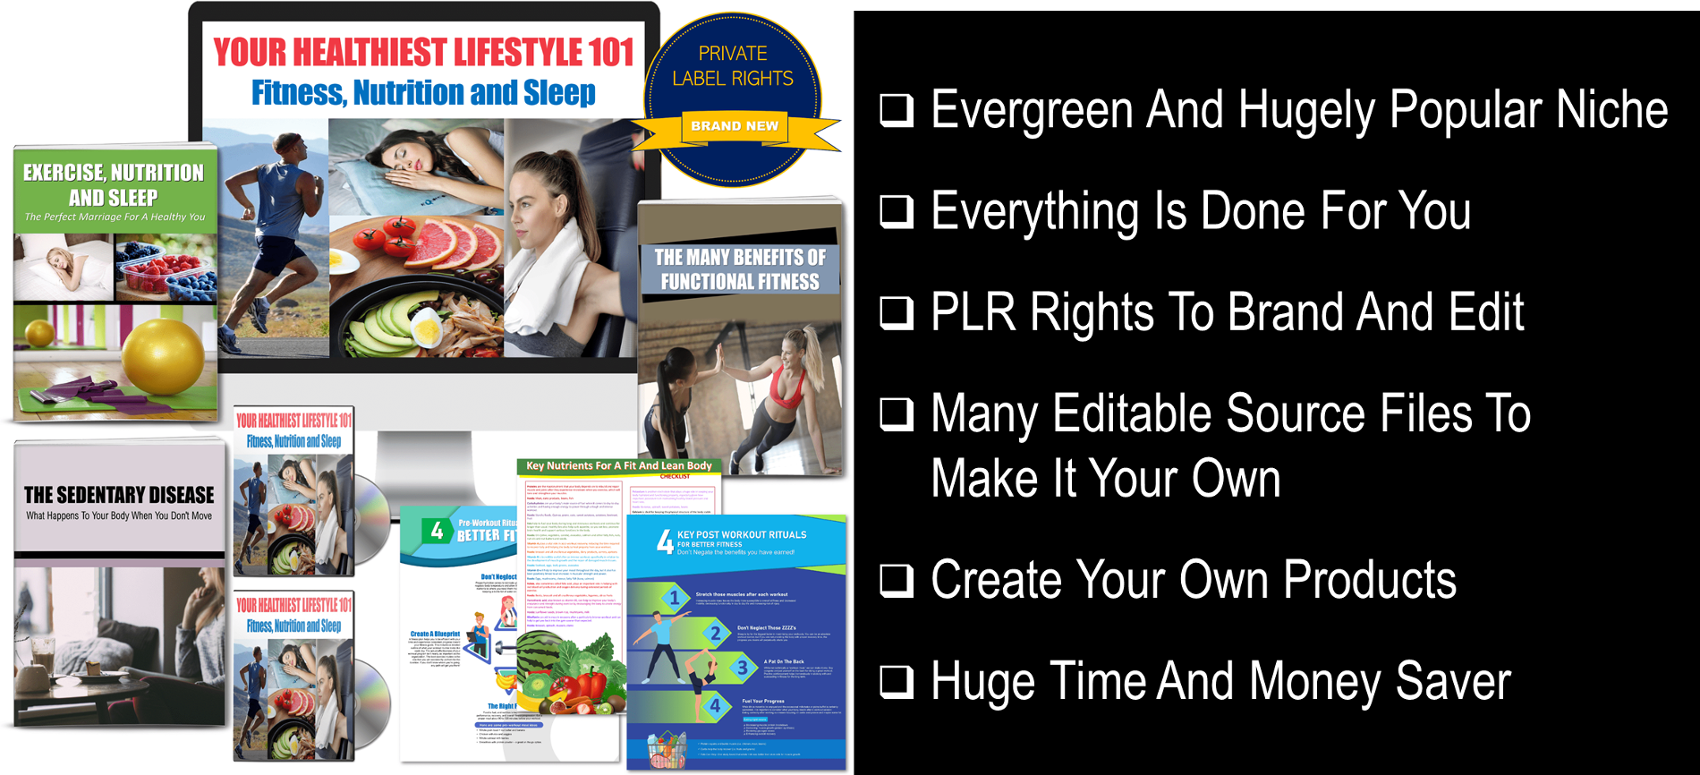 Healthy Lifestyle Content with PLR rights